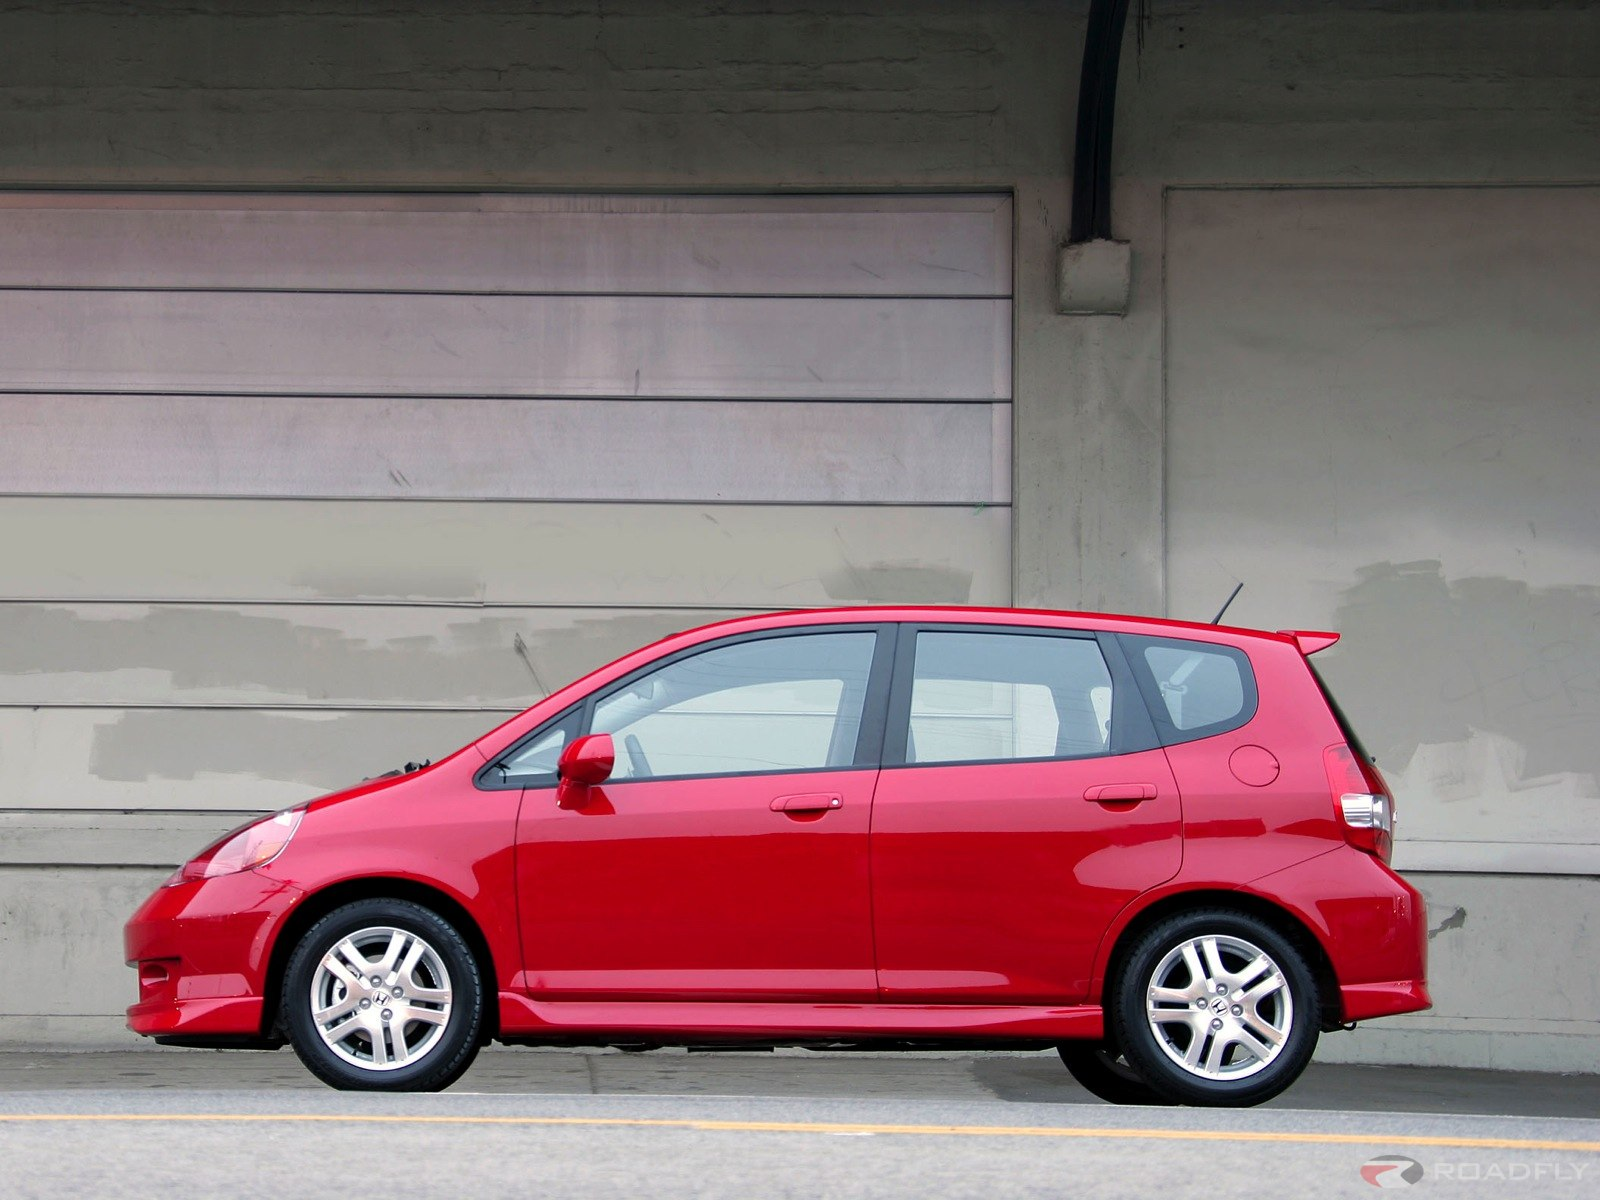 2008 Honda Fit on